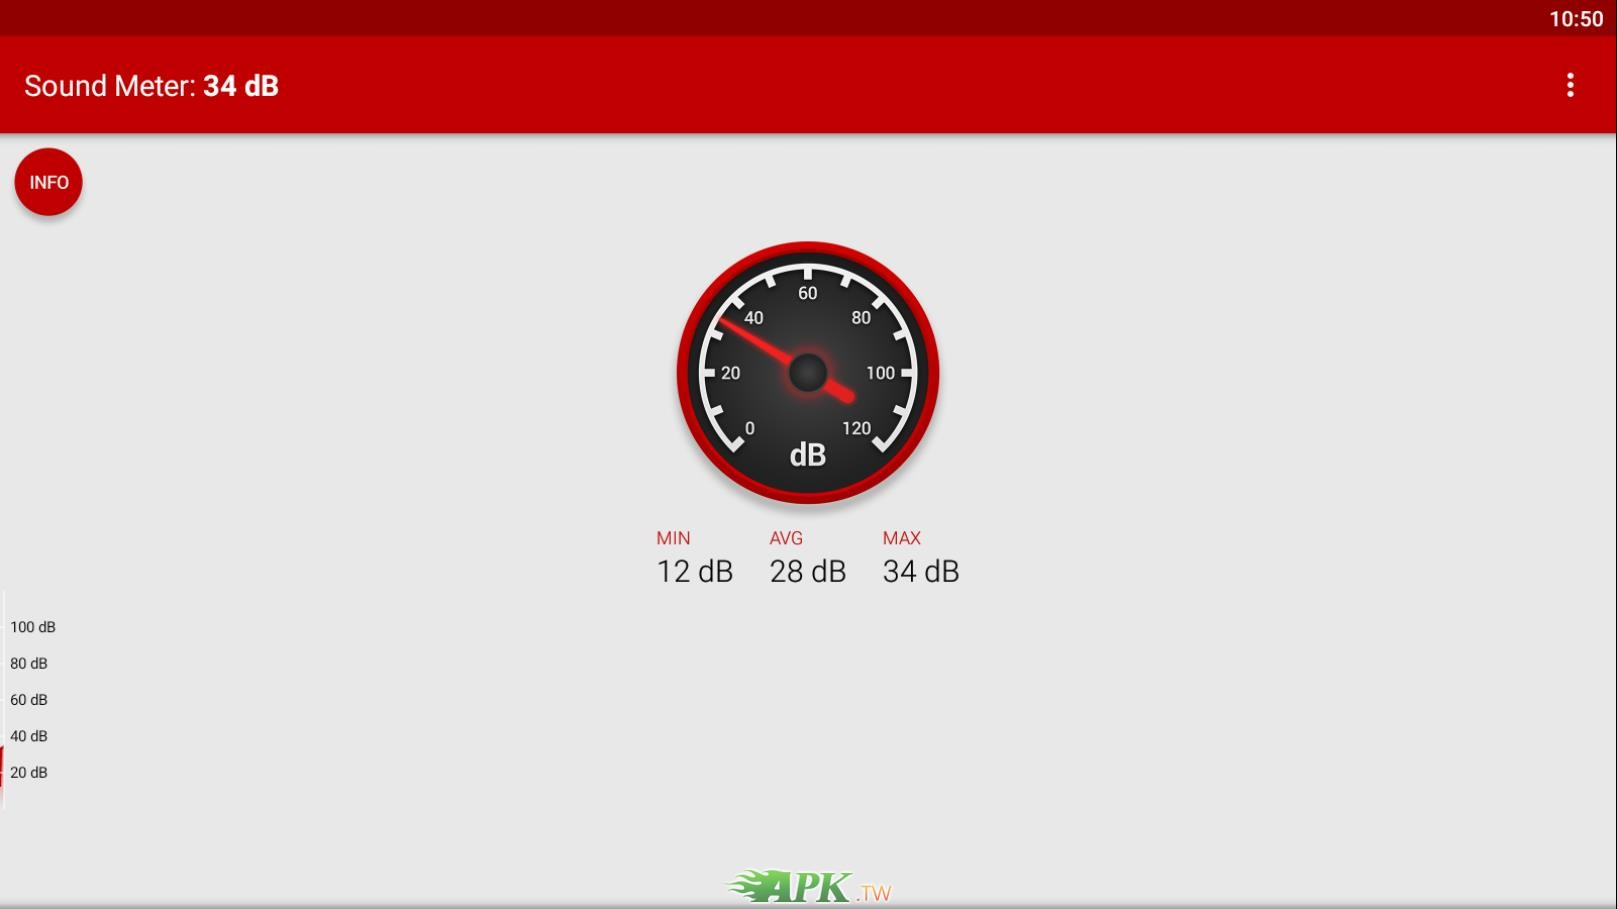 Sound Meter_Screenshot_2020.08.09_22.50.44.jpg